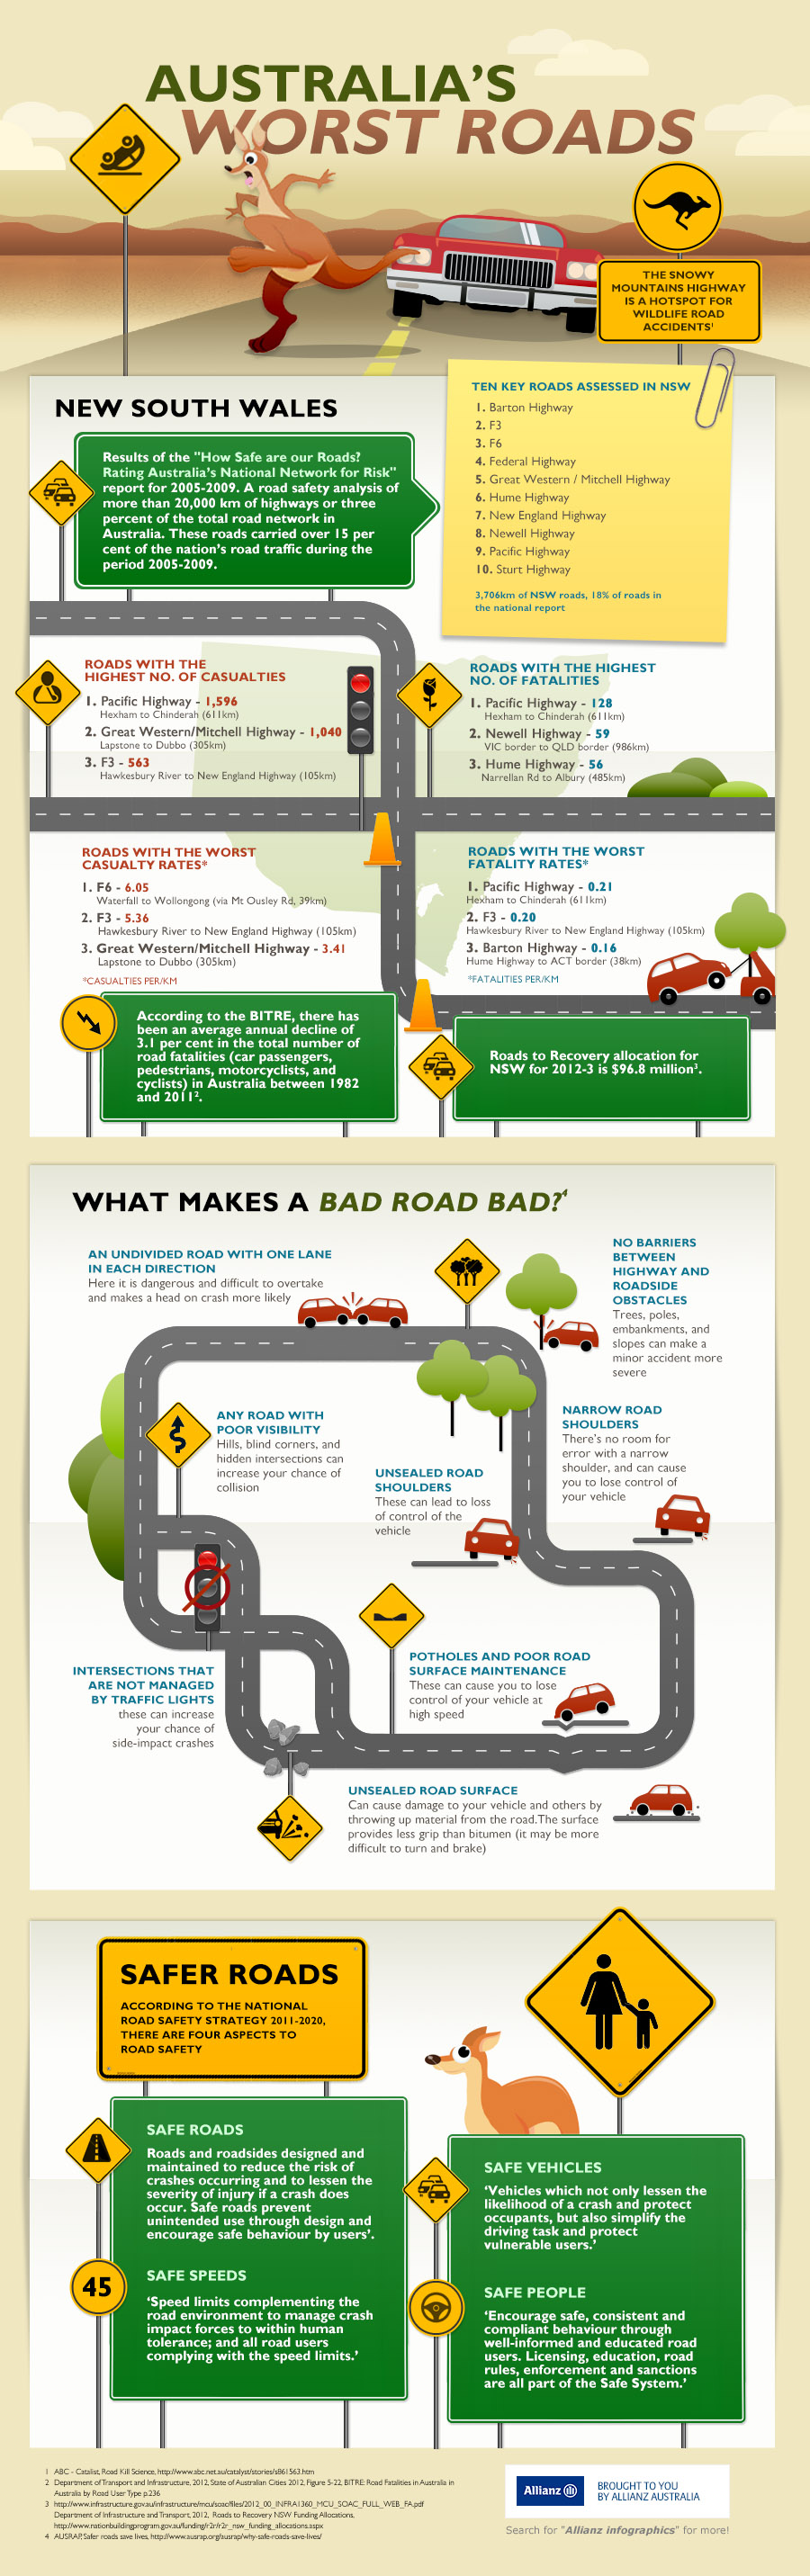 Worst roads in NSW infographic | Car insurance, Auto ...